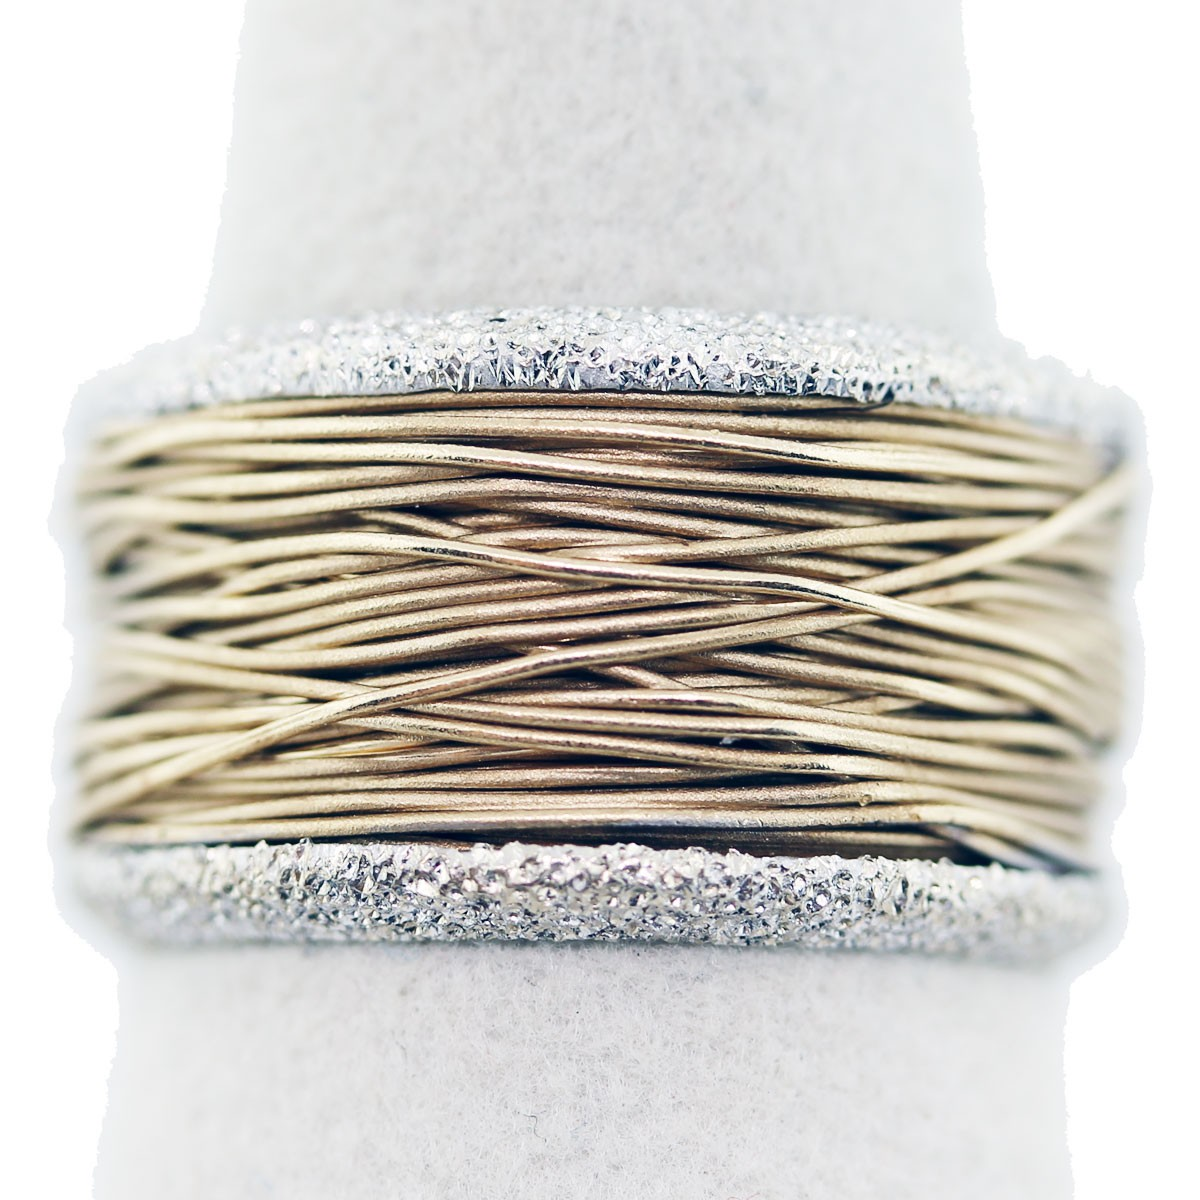 While Many Individuals Have Different Ideas Of Wedding Bands And Engagement  Rings, This One Really Caught My Attention Basically Described As A  Wovenstyle